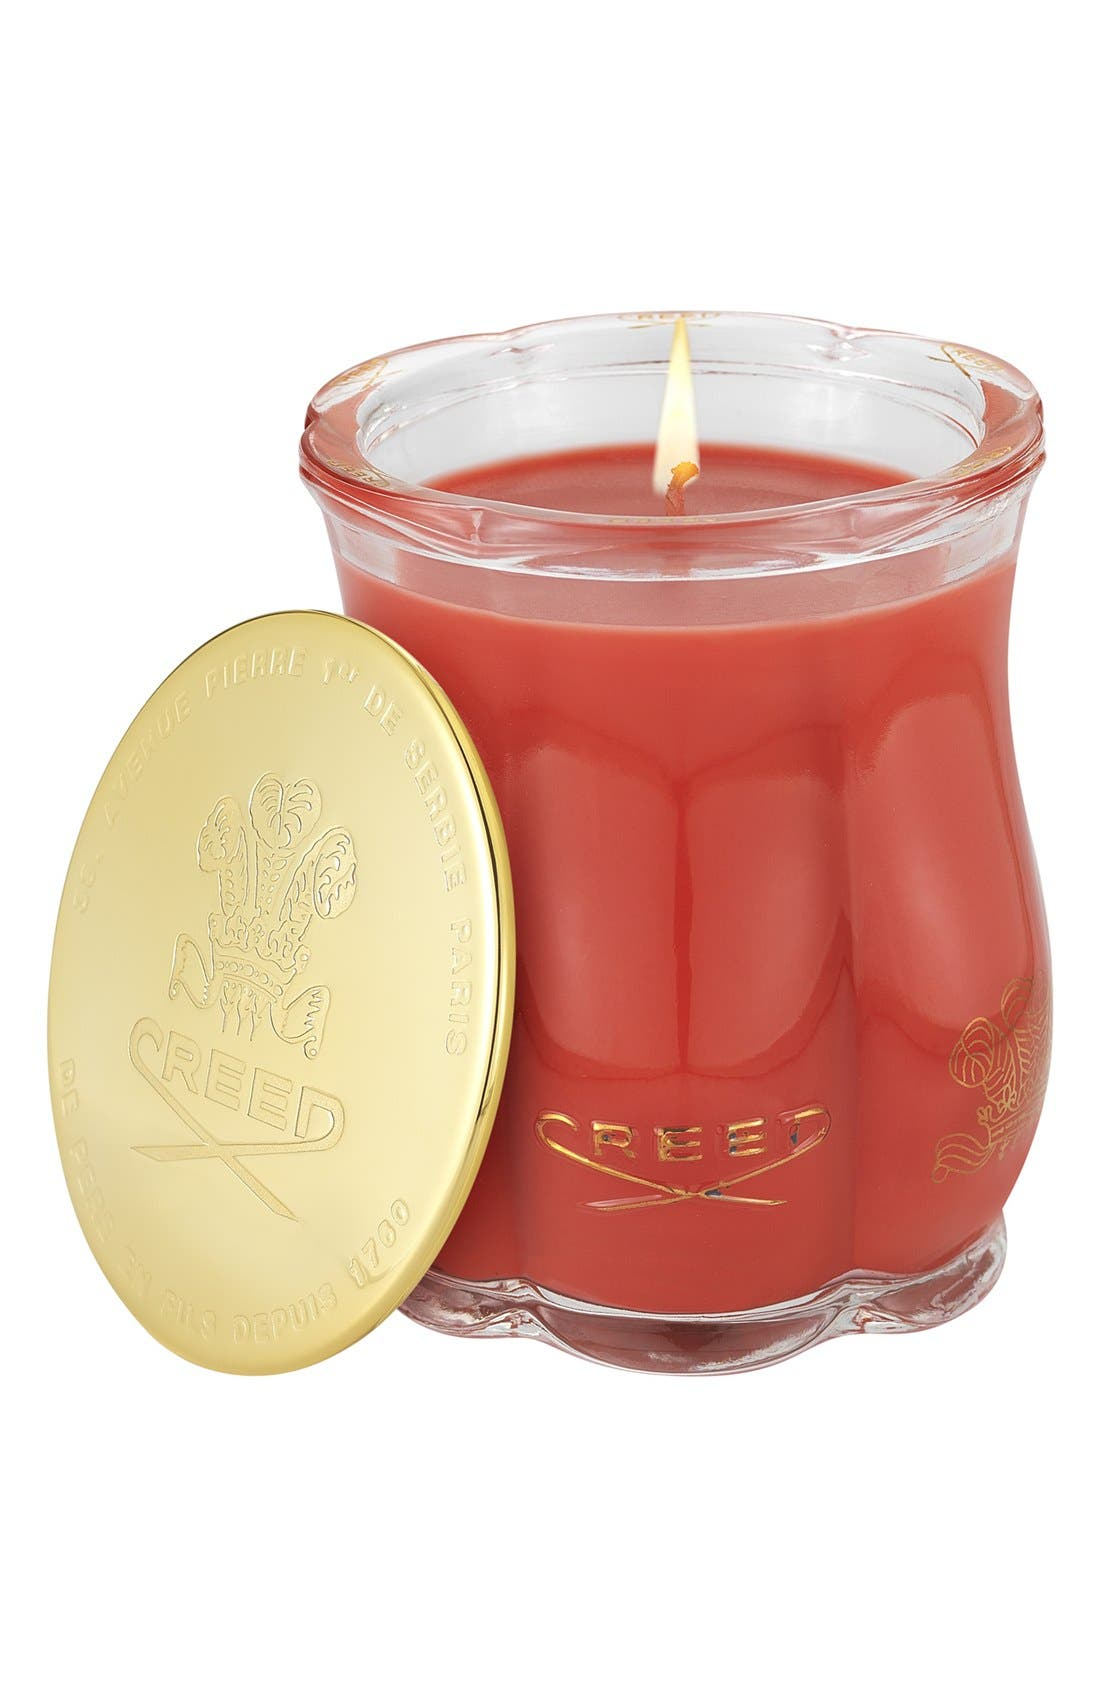 Alternate Image 1 Selected - Creed 'Pekin Imperial' Candle